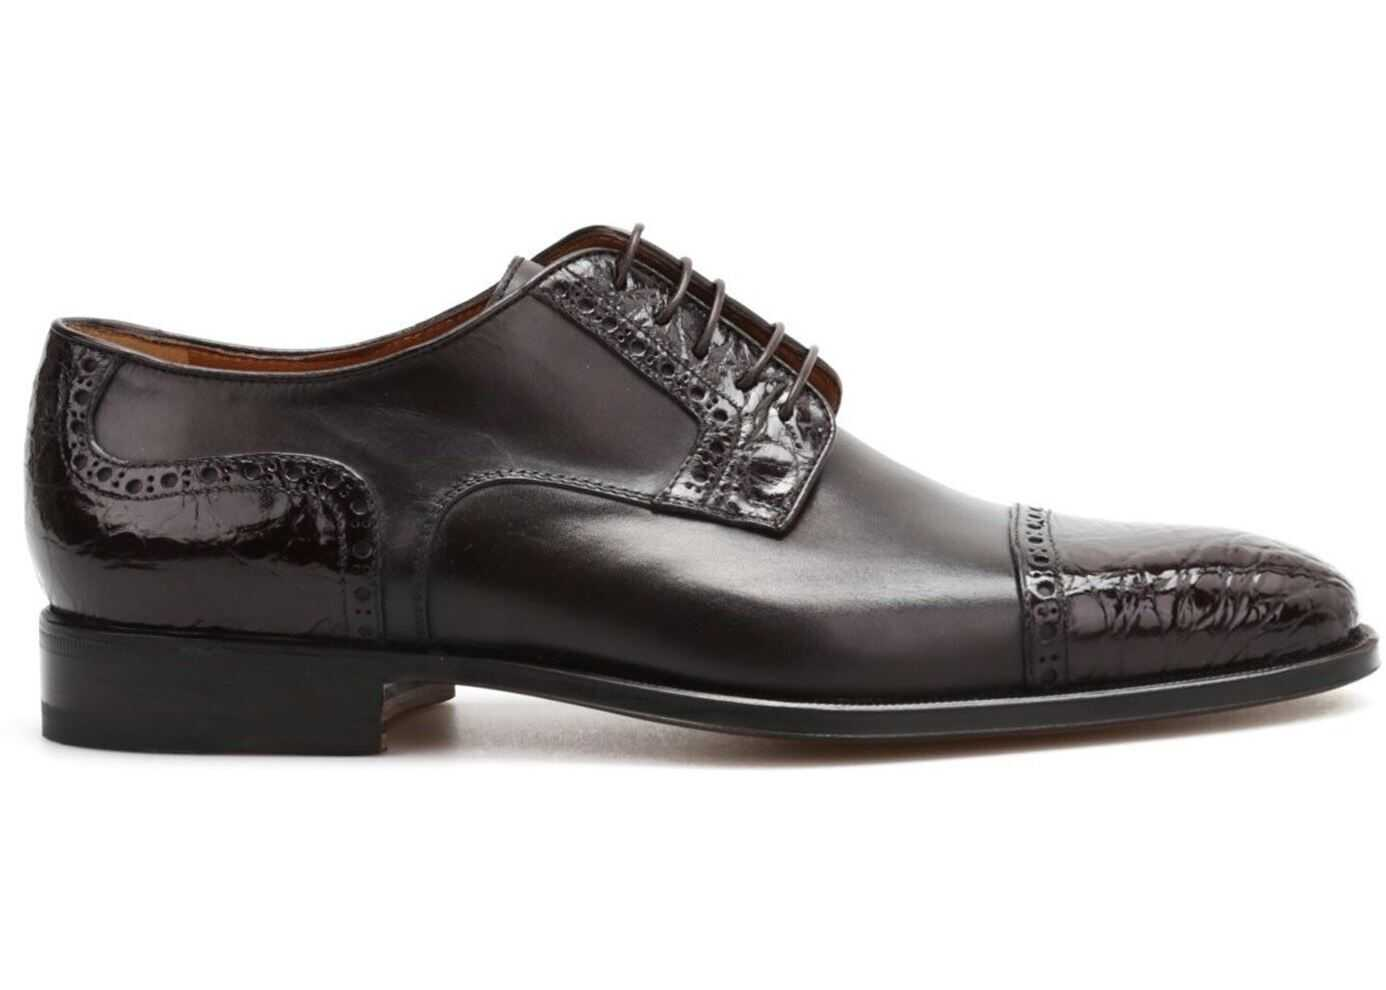 CORNELIANI Leather Derby Shoes In Brown 581090330761 TM1000 Brown imagine b-mall.ro